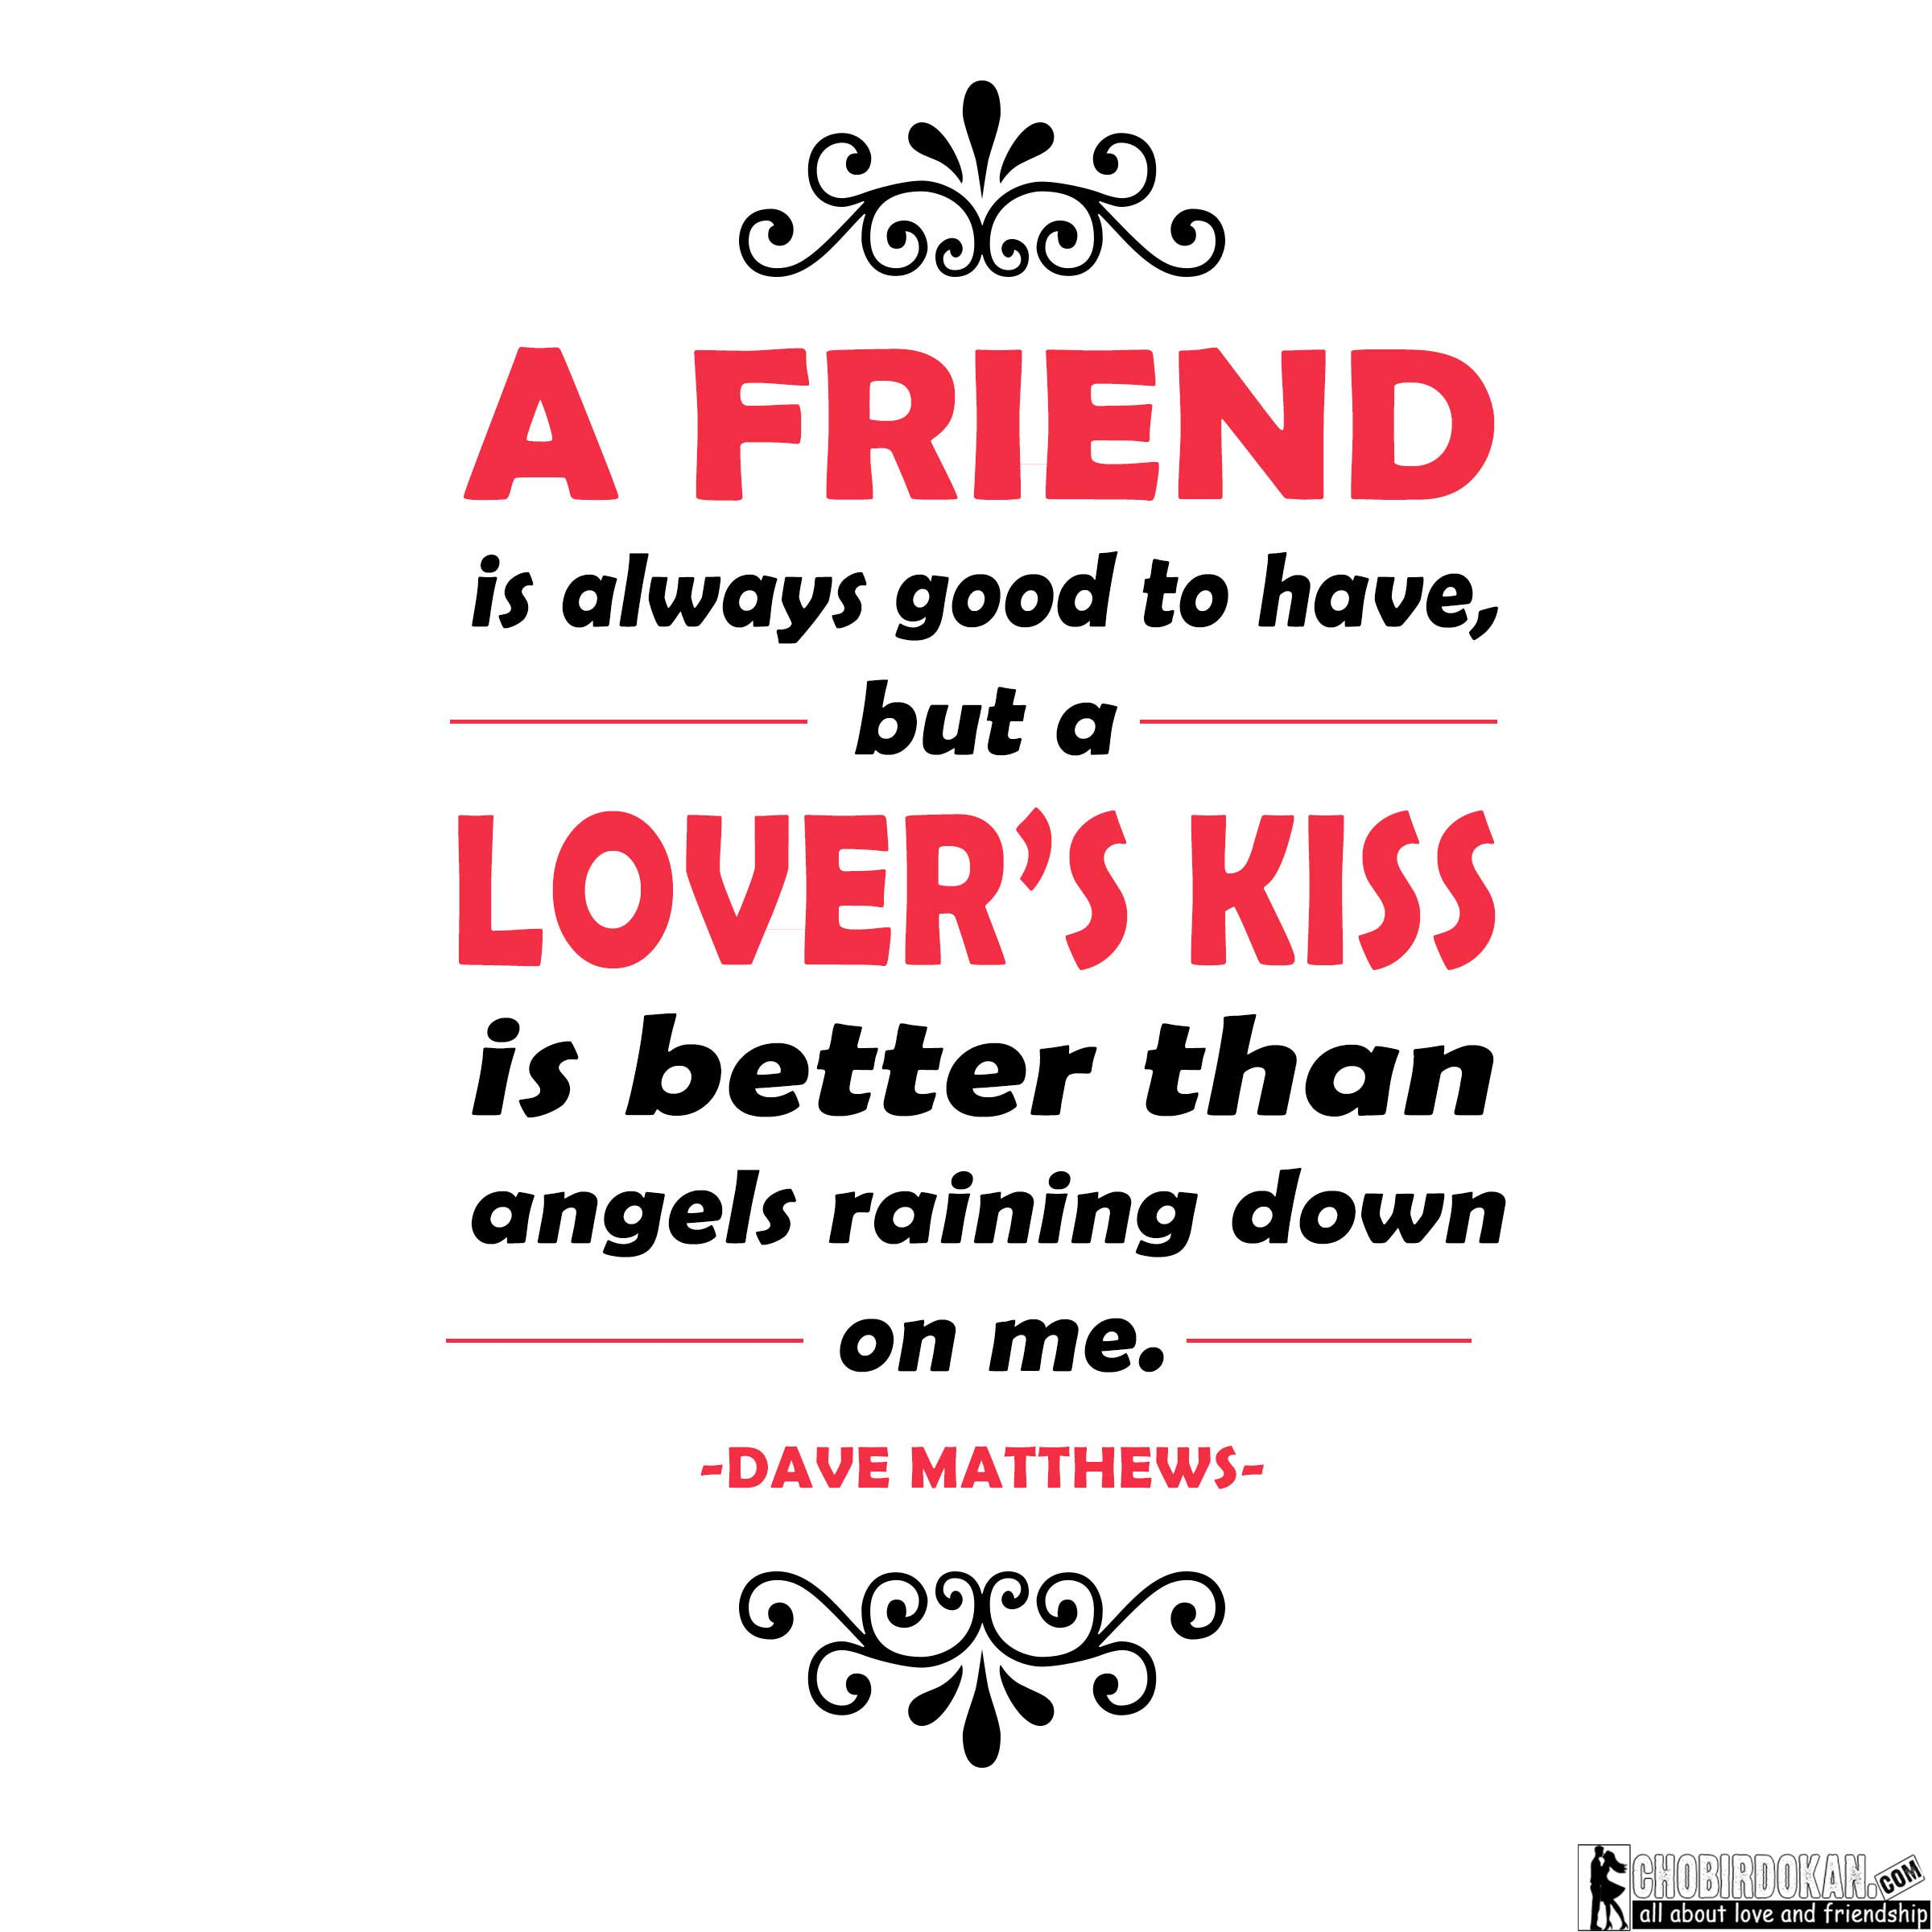 Good Quotes About Love And Friendship Cute Kissing Quotes Images For Herhim Best Love Kiss Quotes